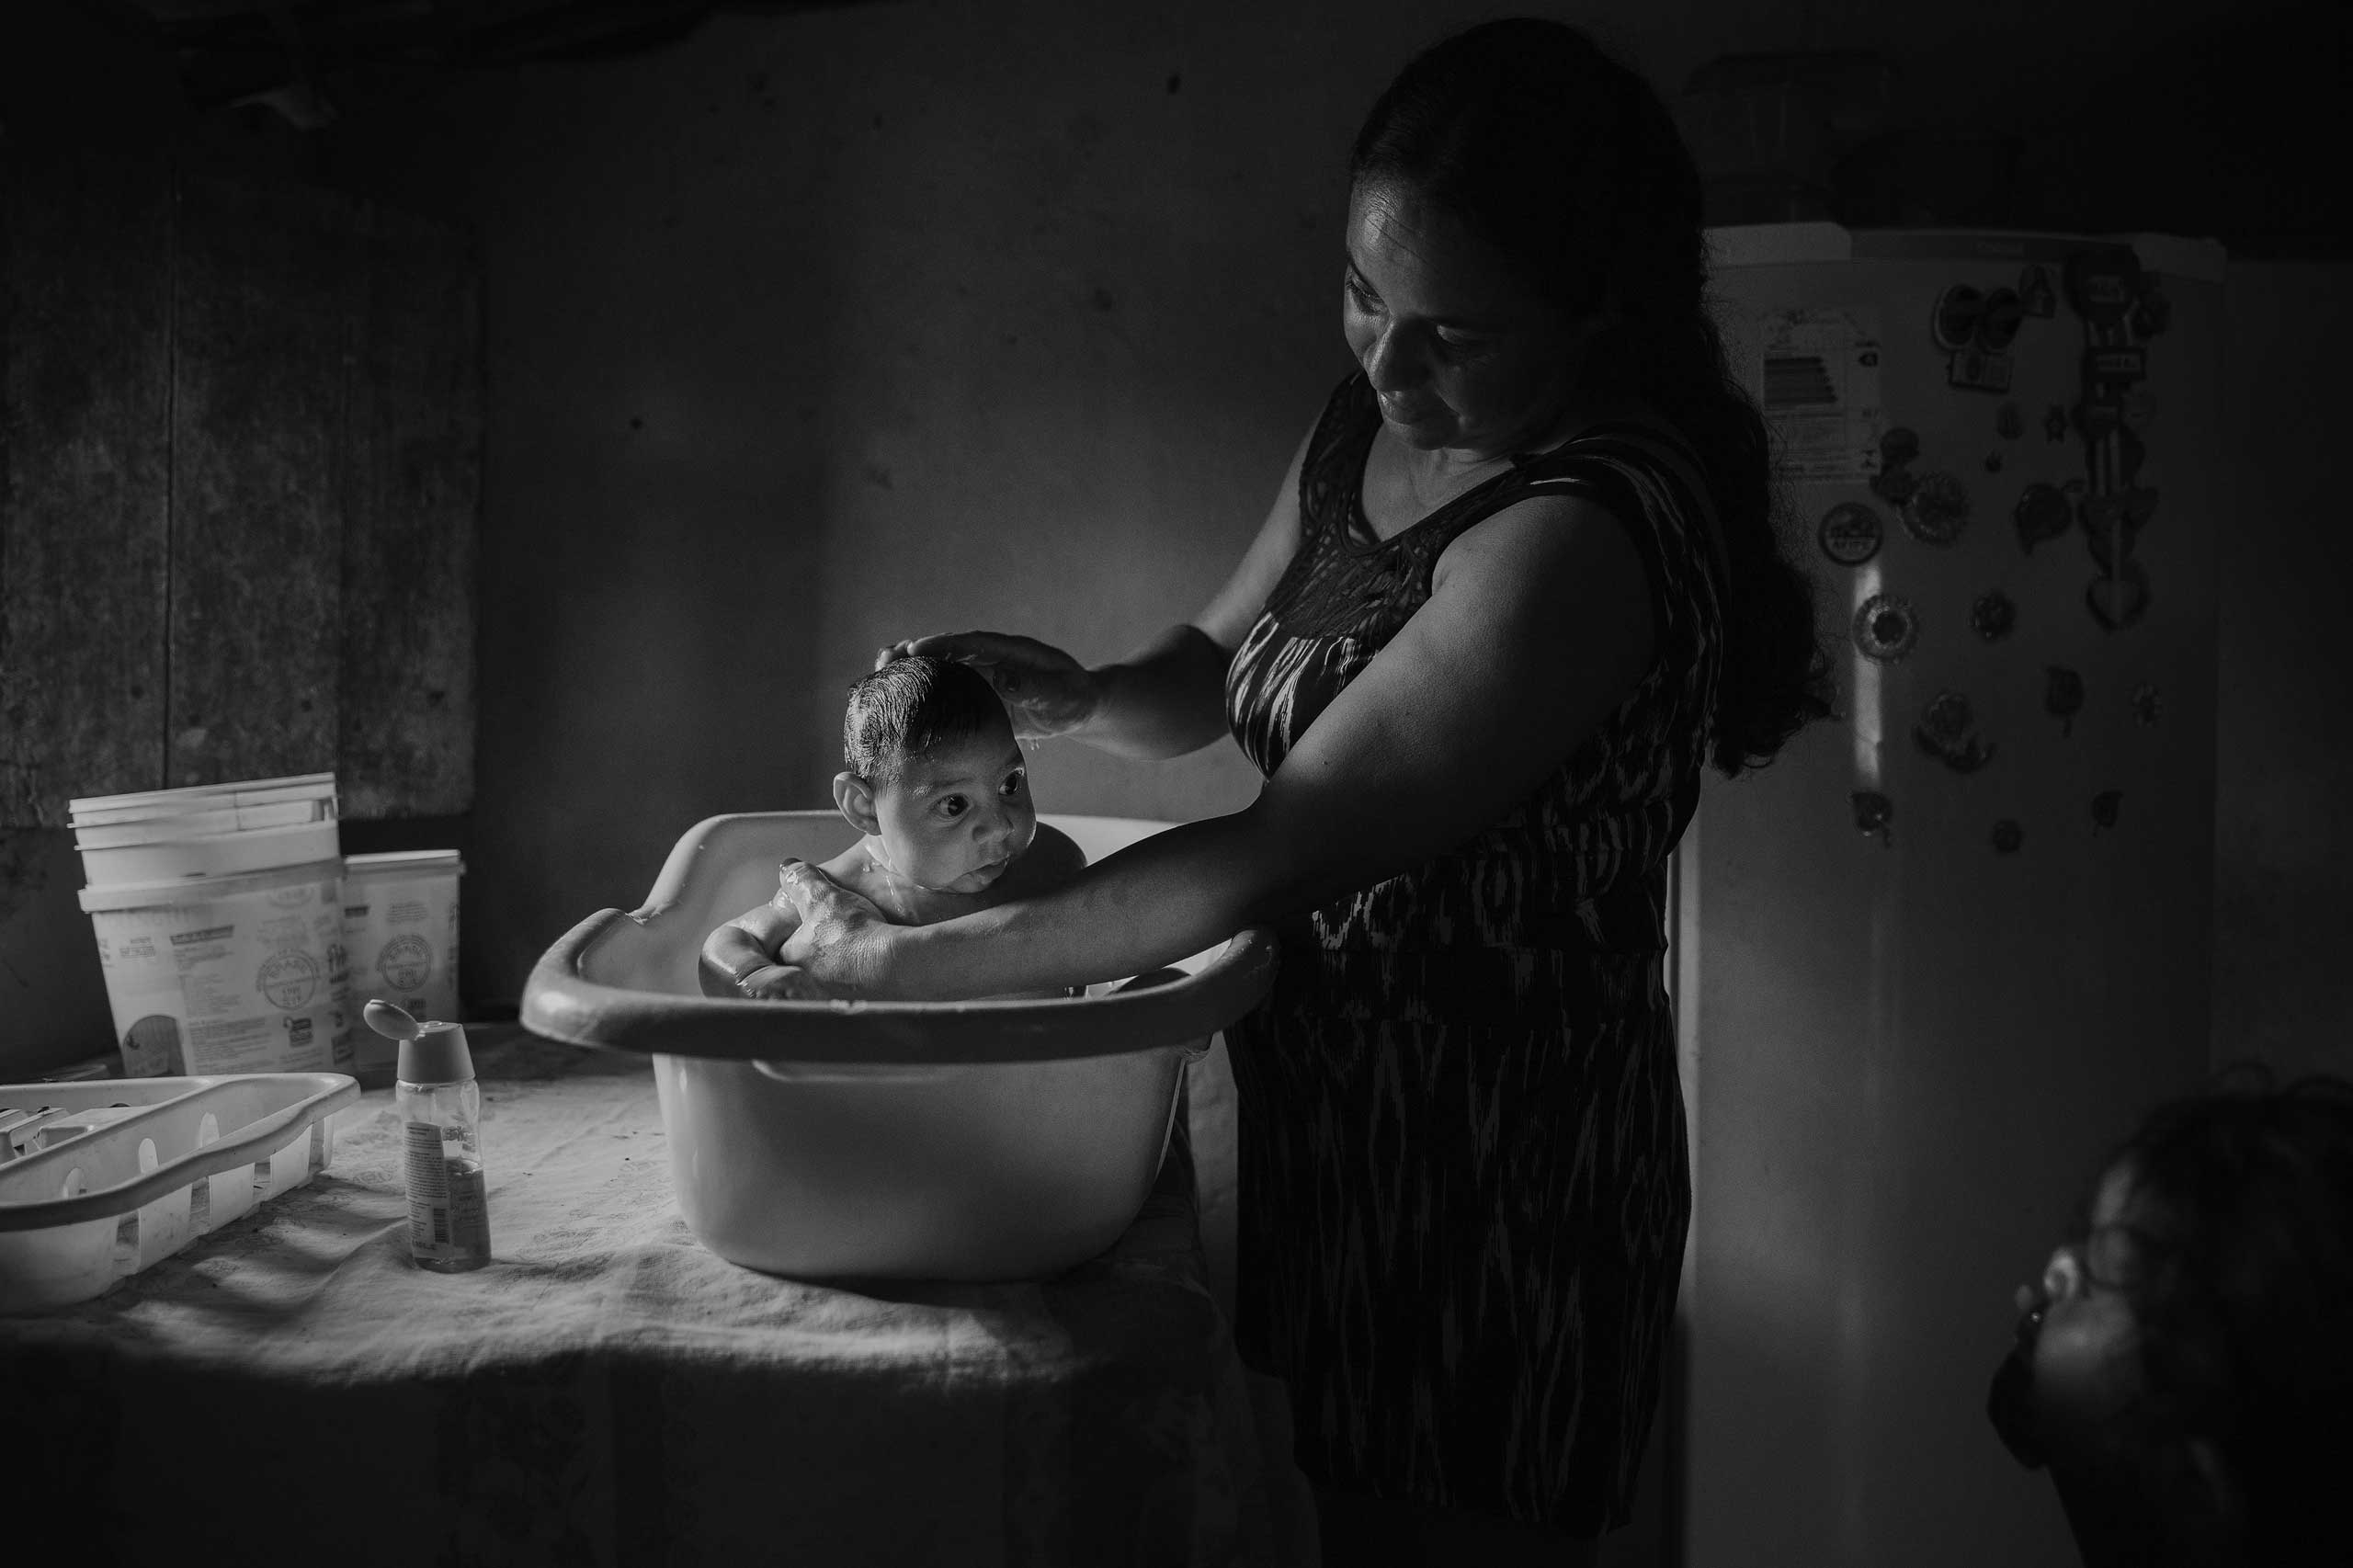 Adriana Cordeiro Soares, 30, bathes her son João Miguel, 3 months old, who was born with microcephaly caused by the Zika virus, in her house in the rural area of São Vicente do Seridó.